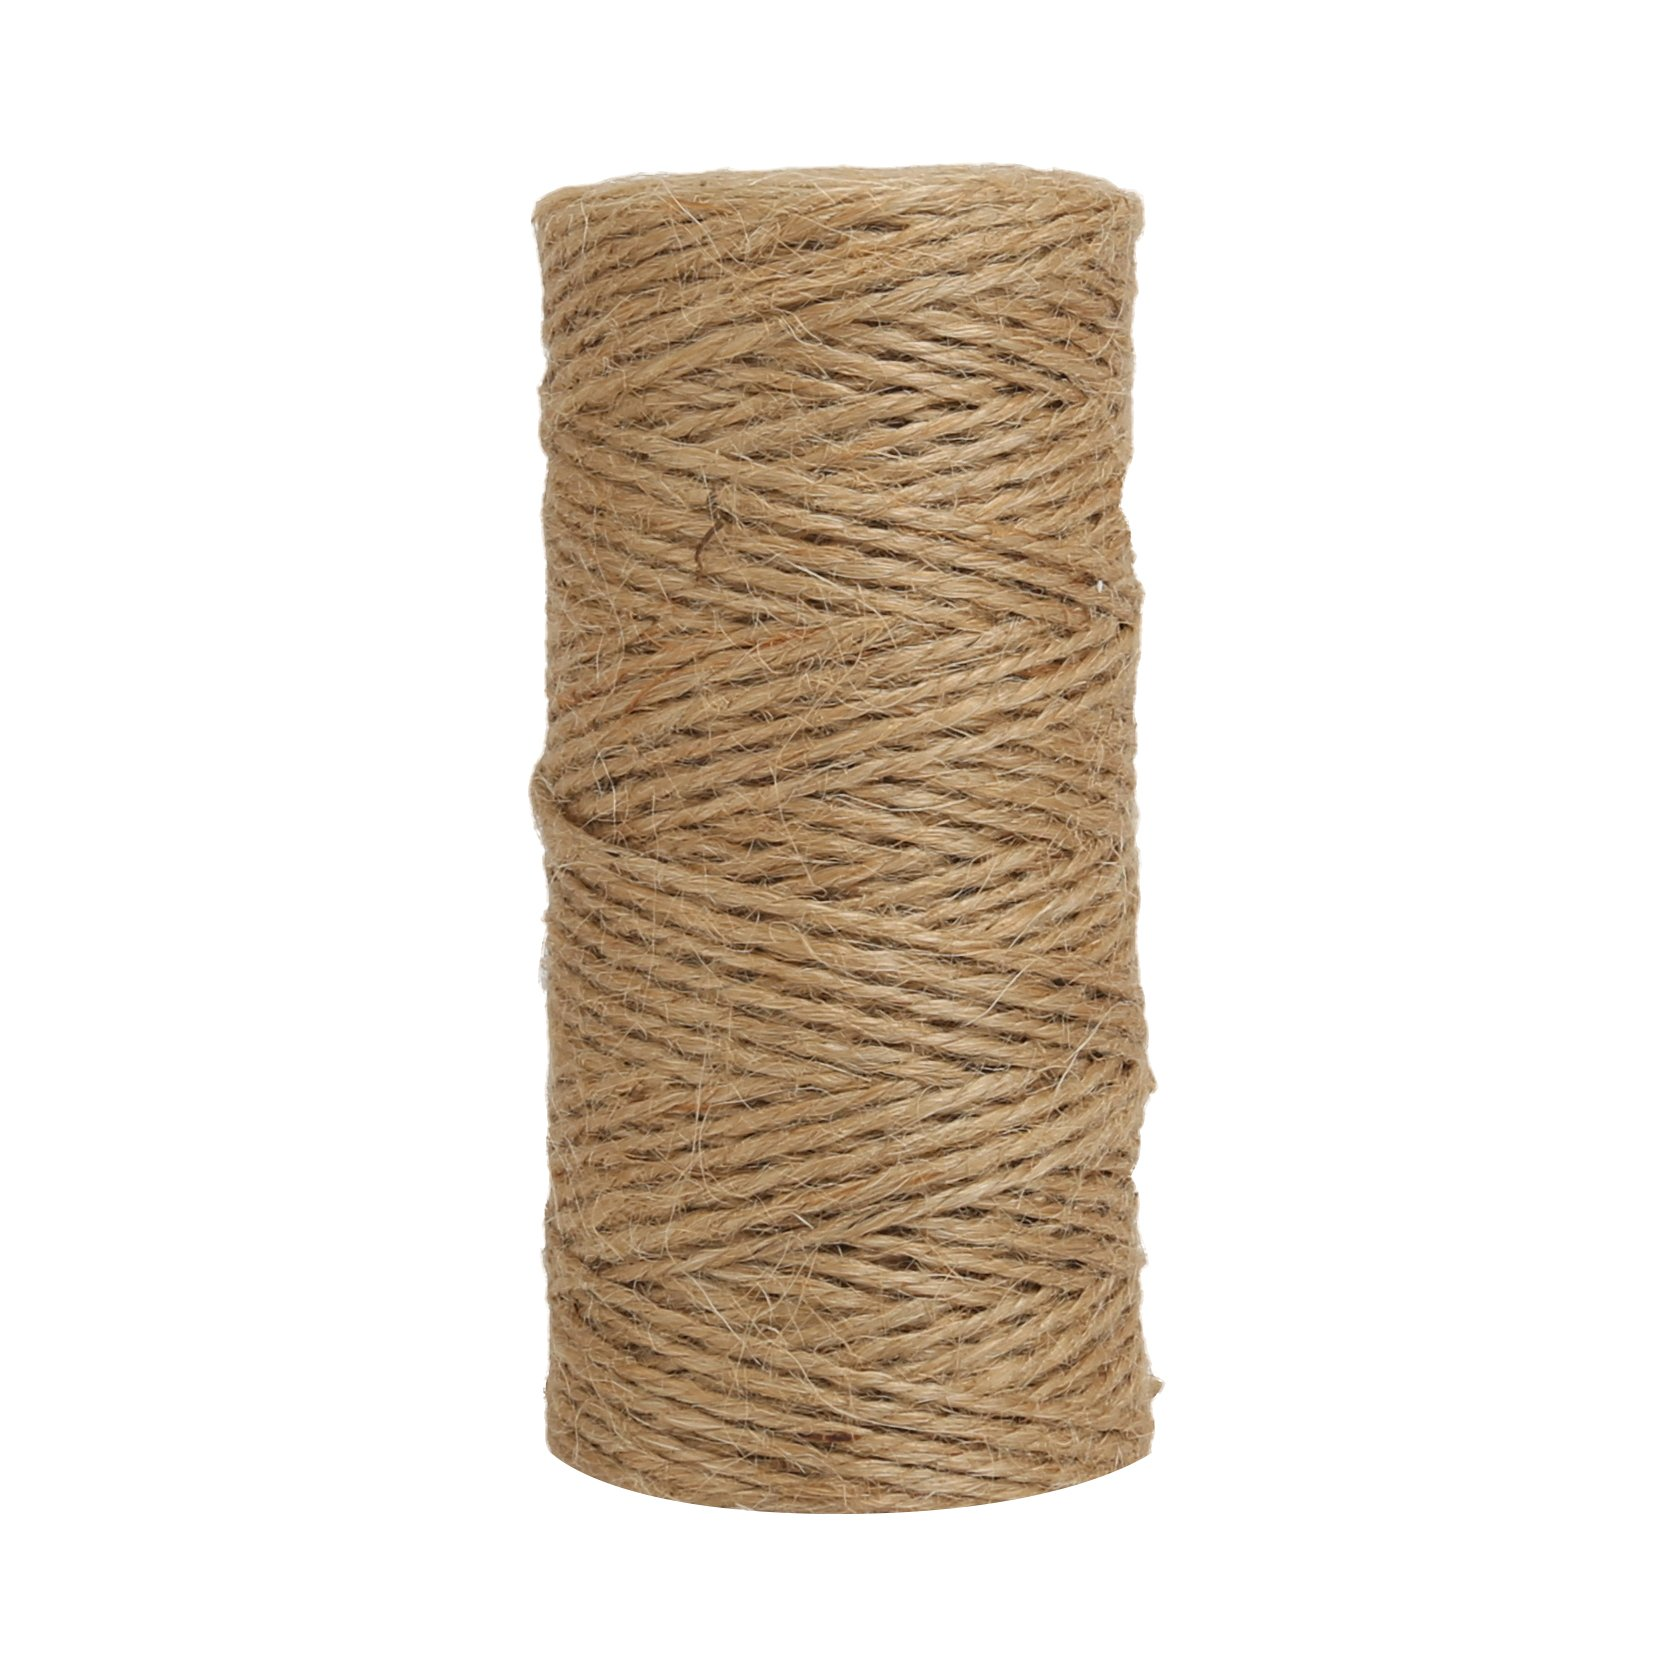 Shintop 100 Feet 6 Ply Natural Jute Twine Best Industrial Packing Materials Heavy Duty Natural Jute Twine for Gift Packing, Arts, Crafts and Gardening Applications